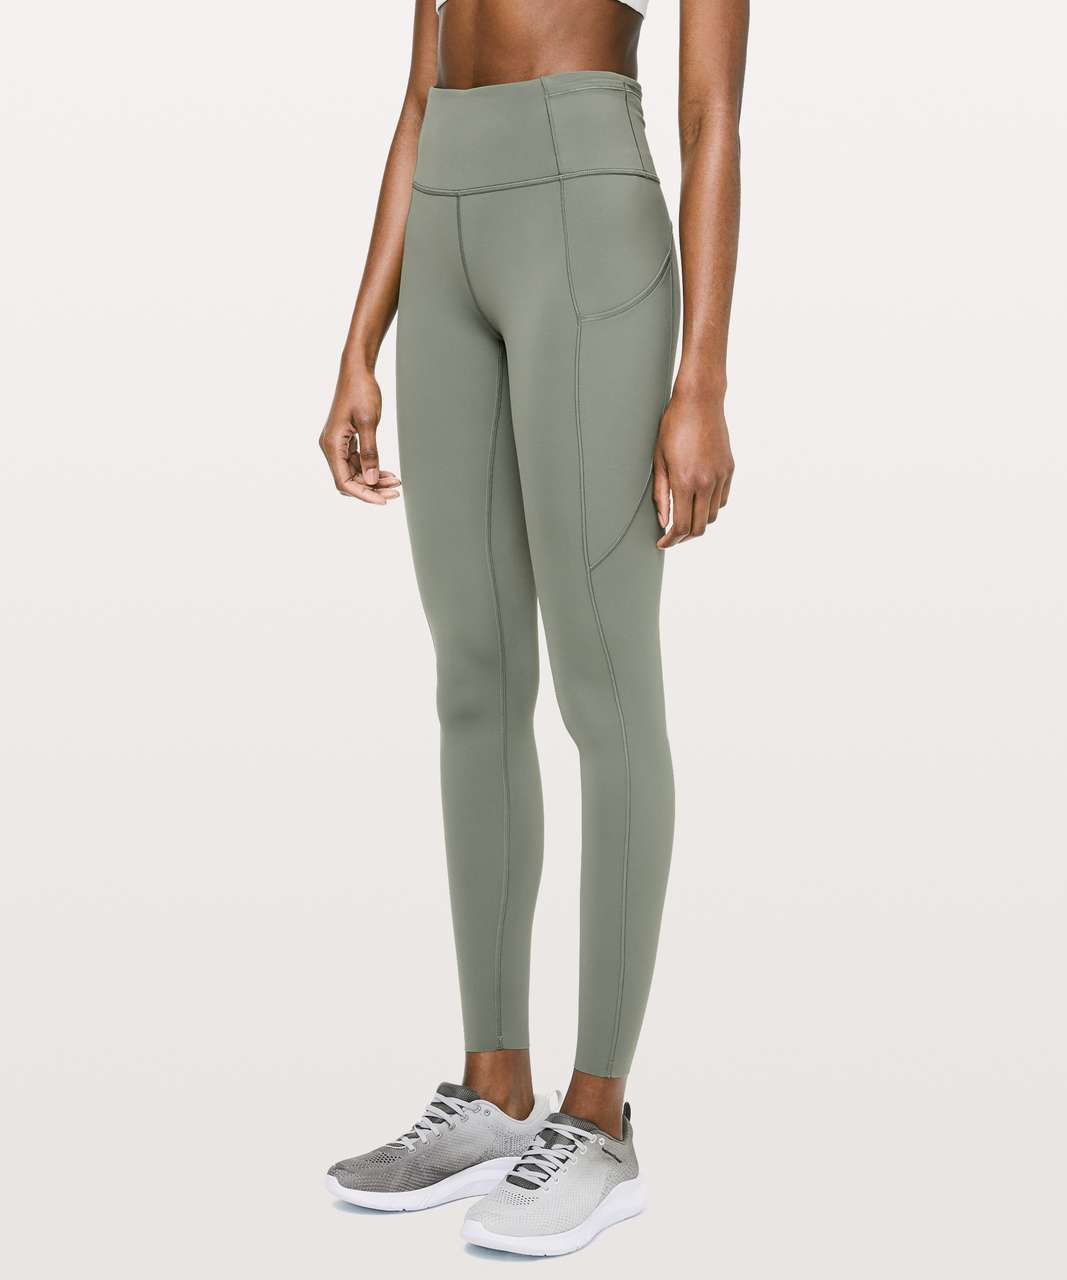 "Lululemon Fast & Free Full Length Tight *Non-Reflective 28"" - Grey Sage"